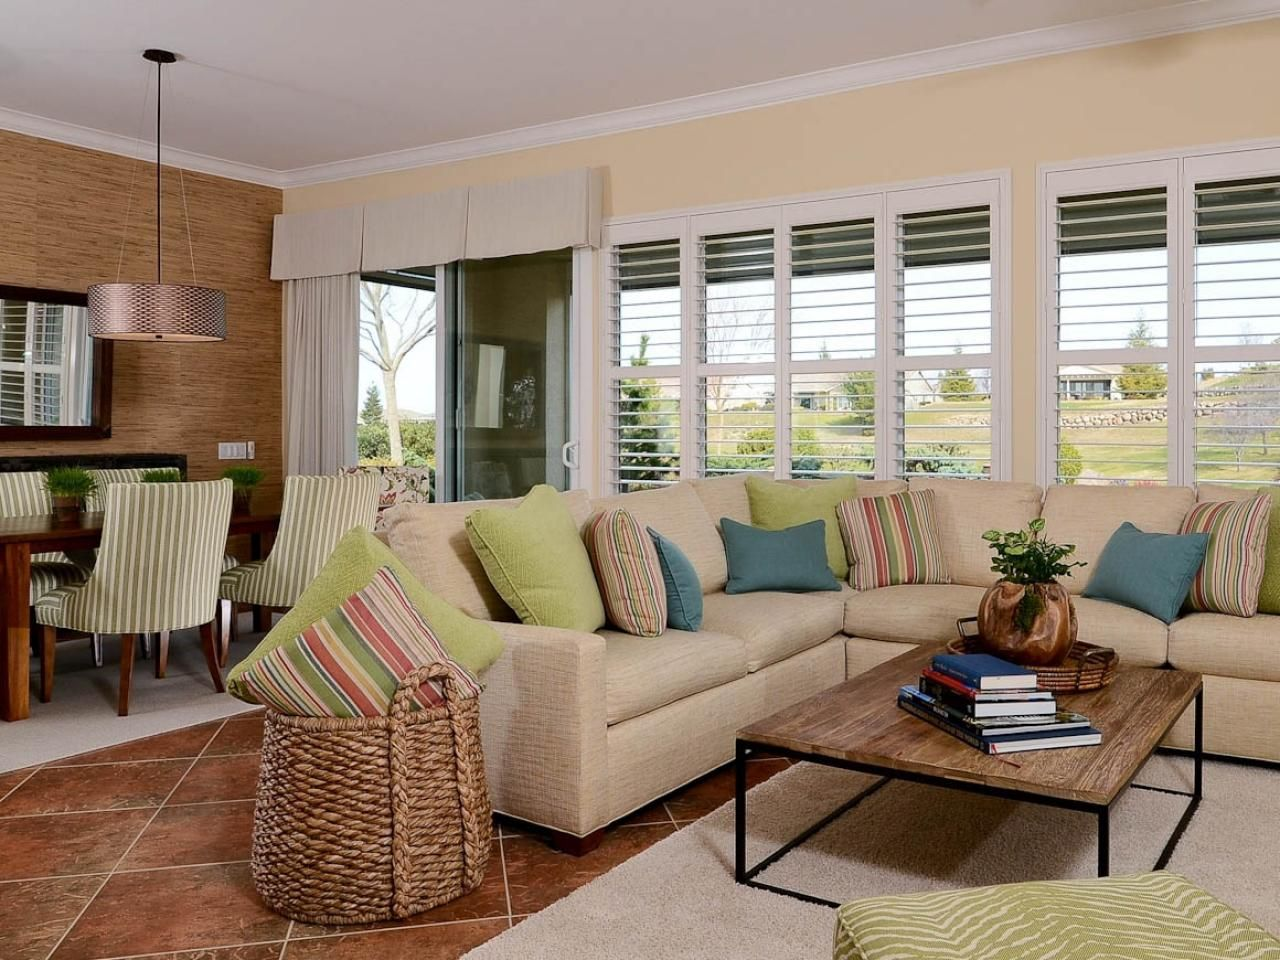 Image Result For Decor Dining Room In Living Space